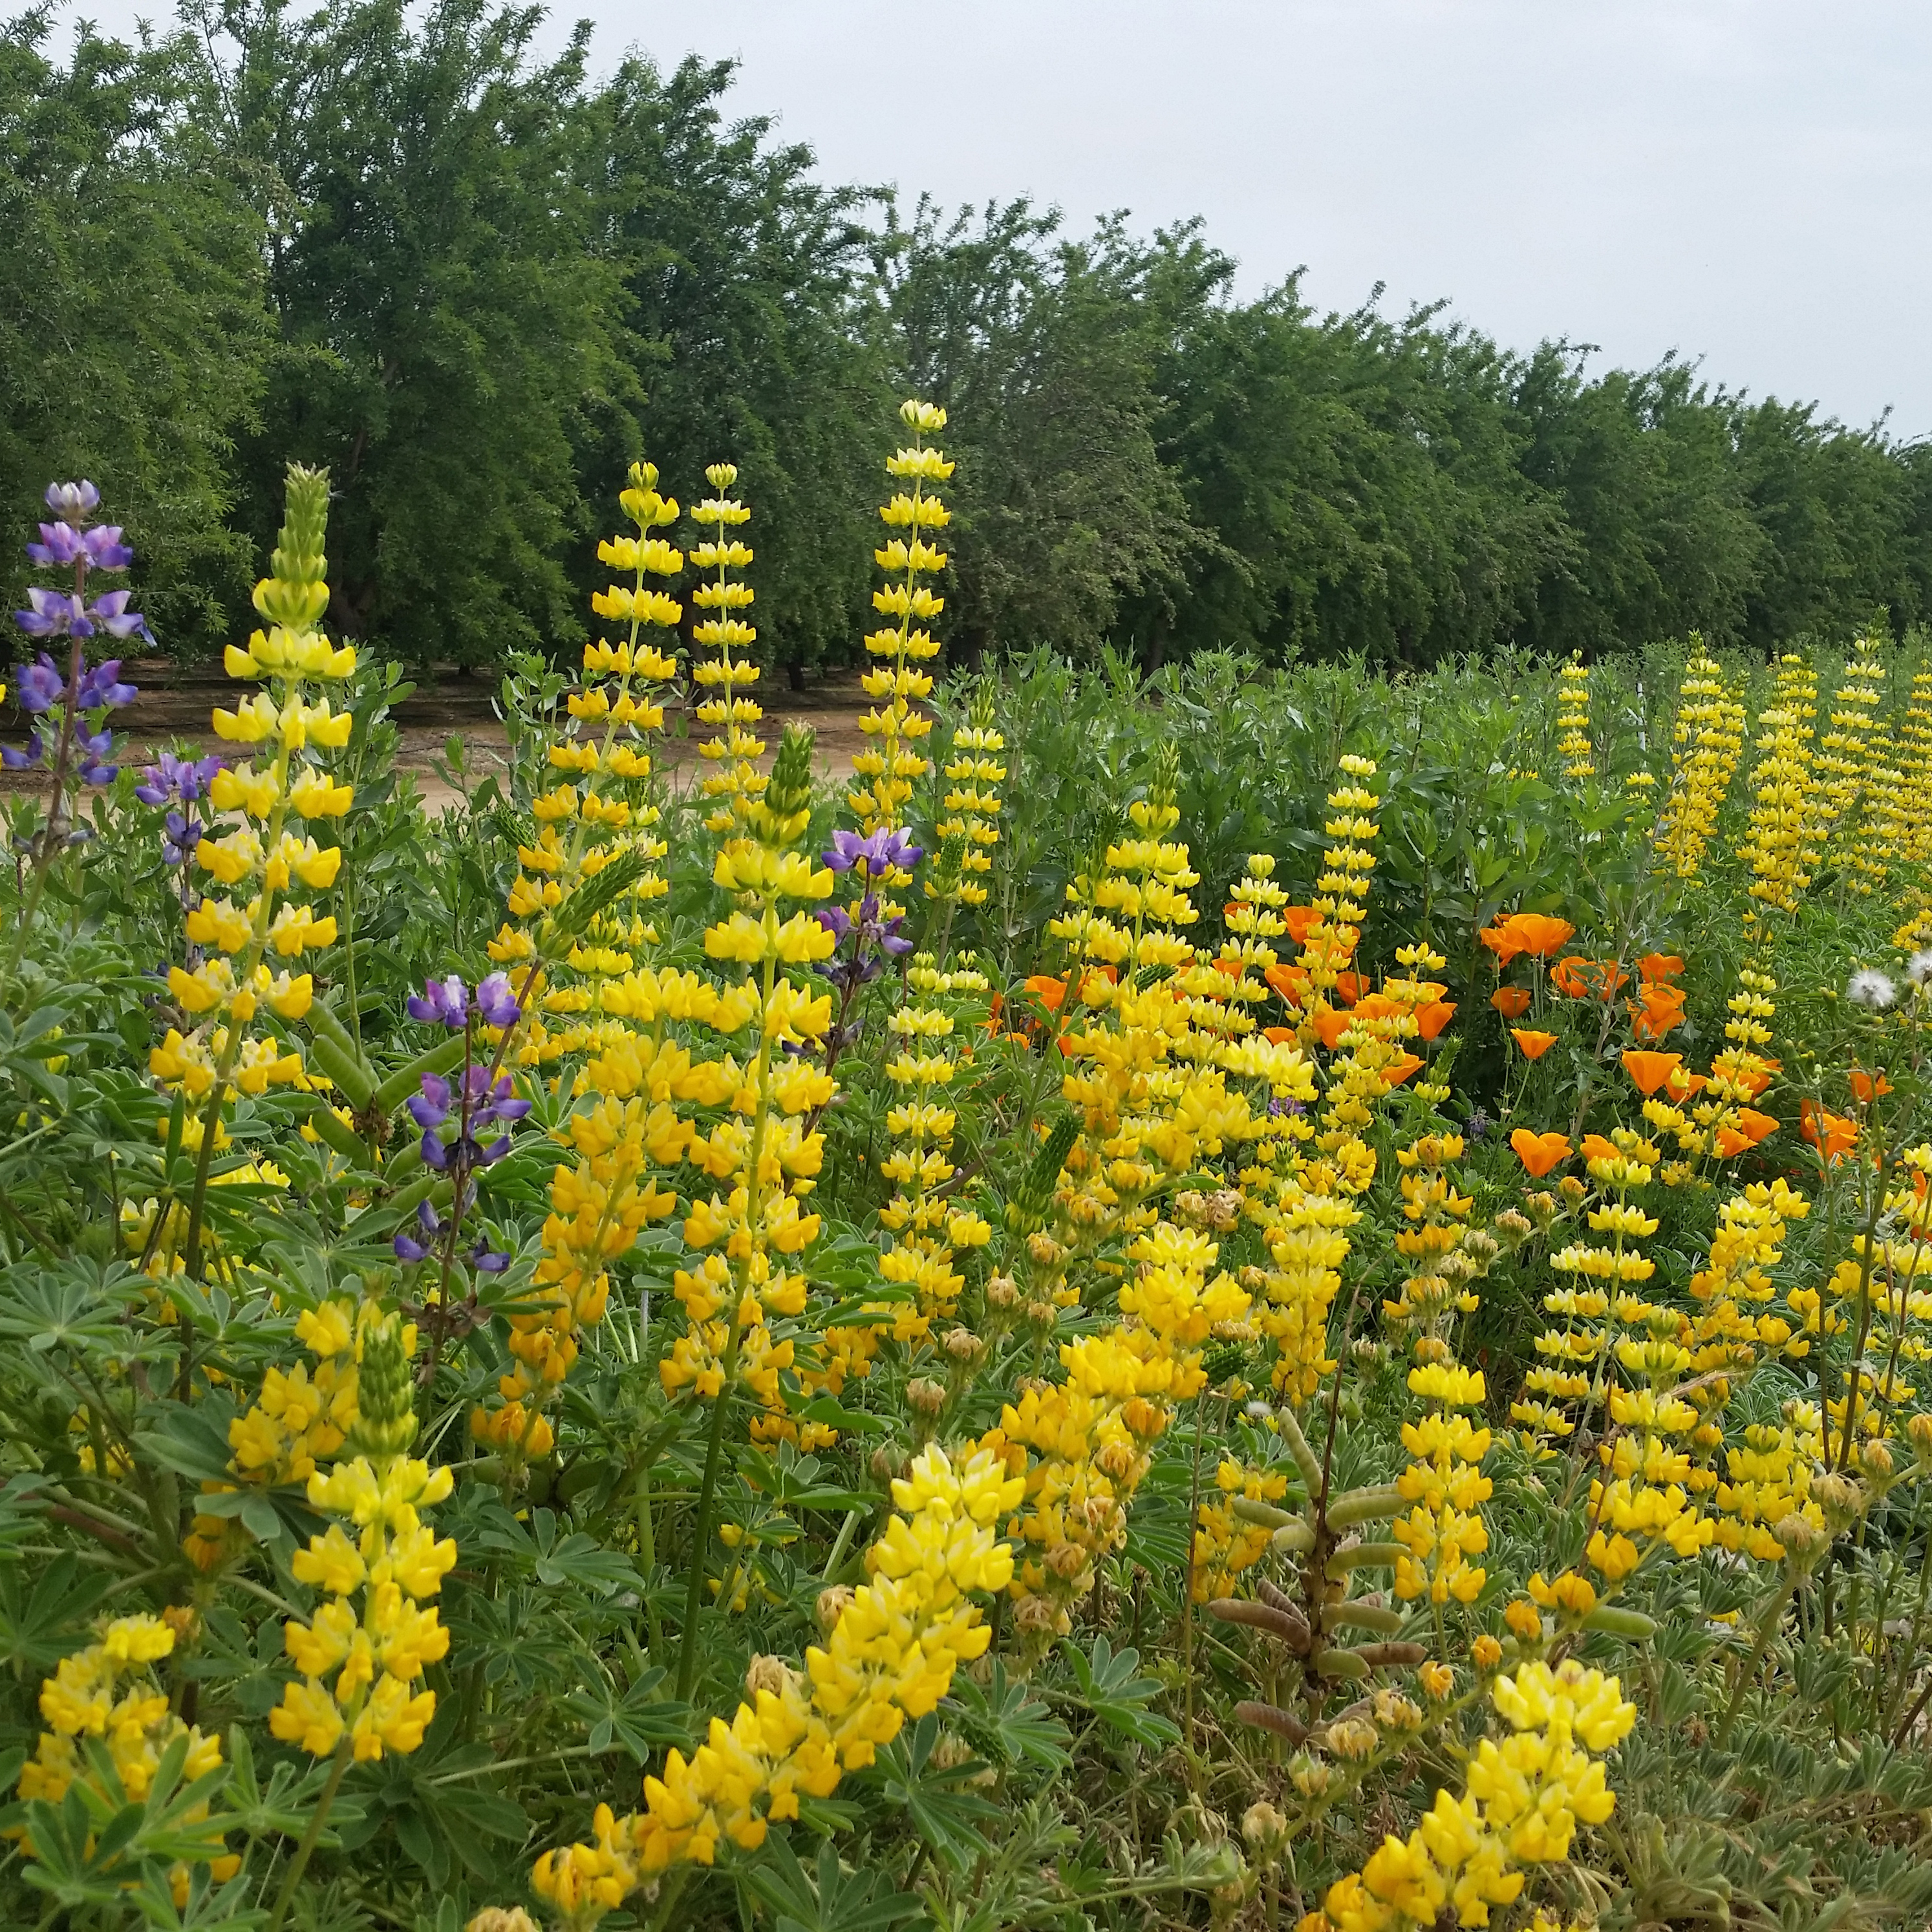 A hedgerow bordering an orchard's tidy rows is bursting with color, especially yellow.